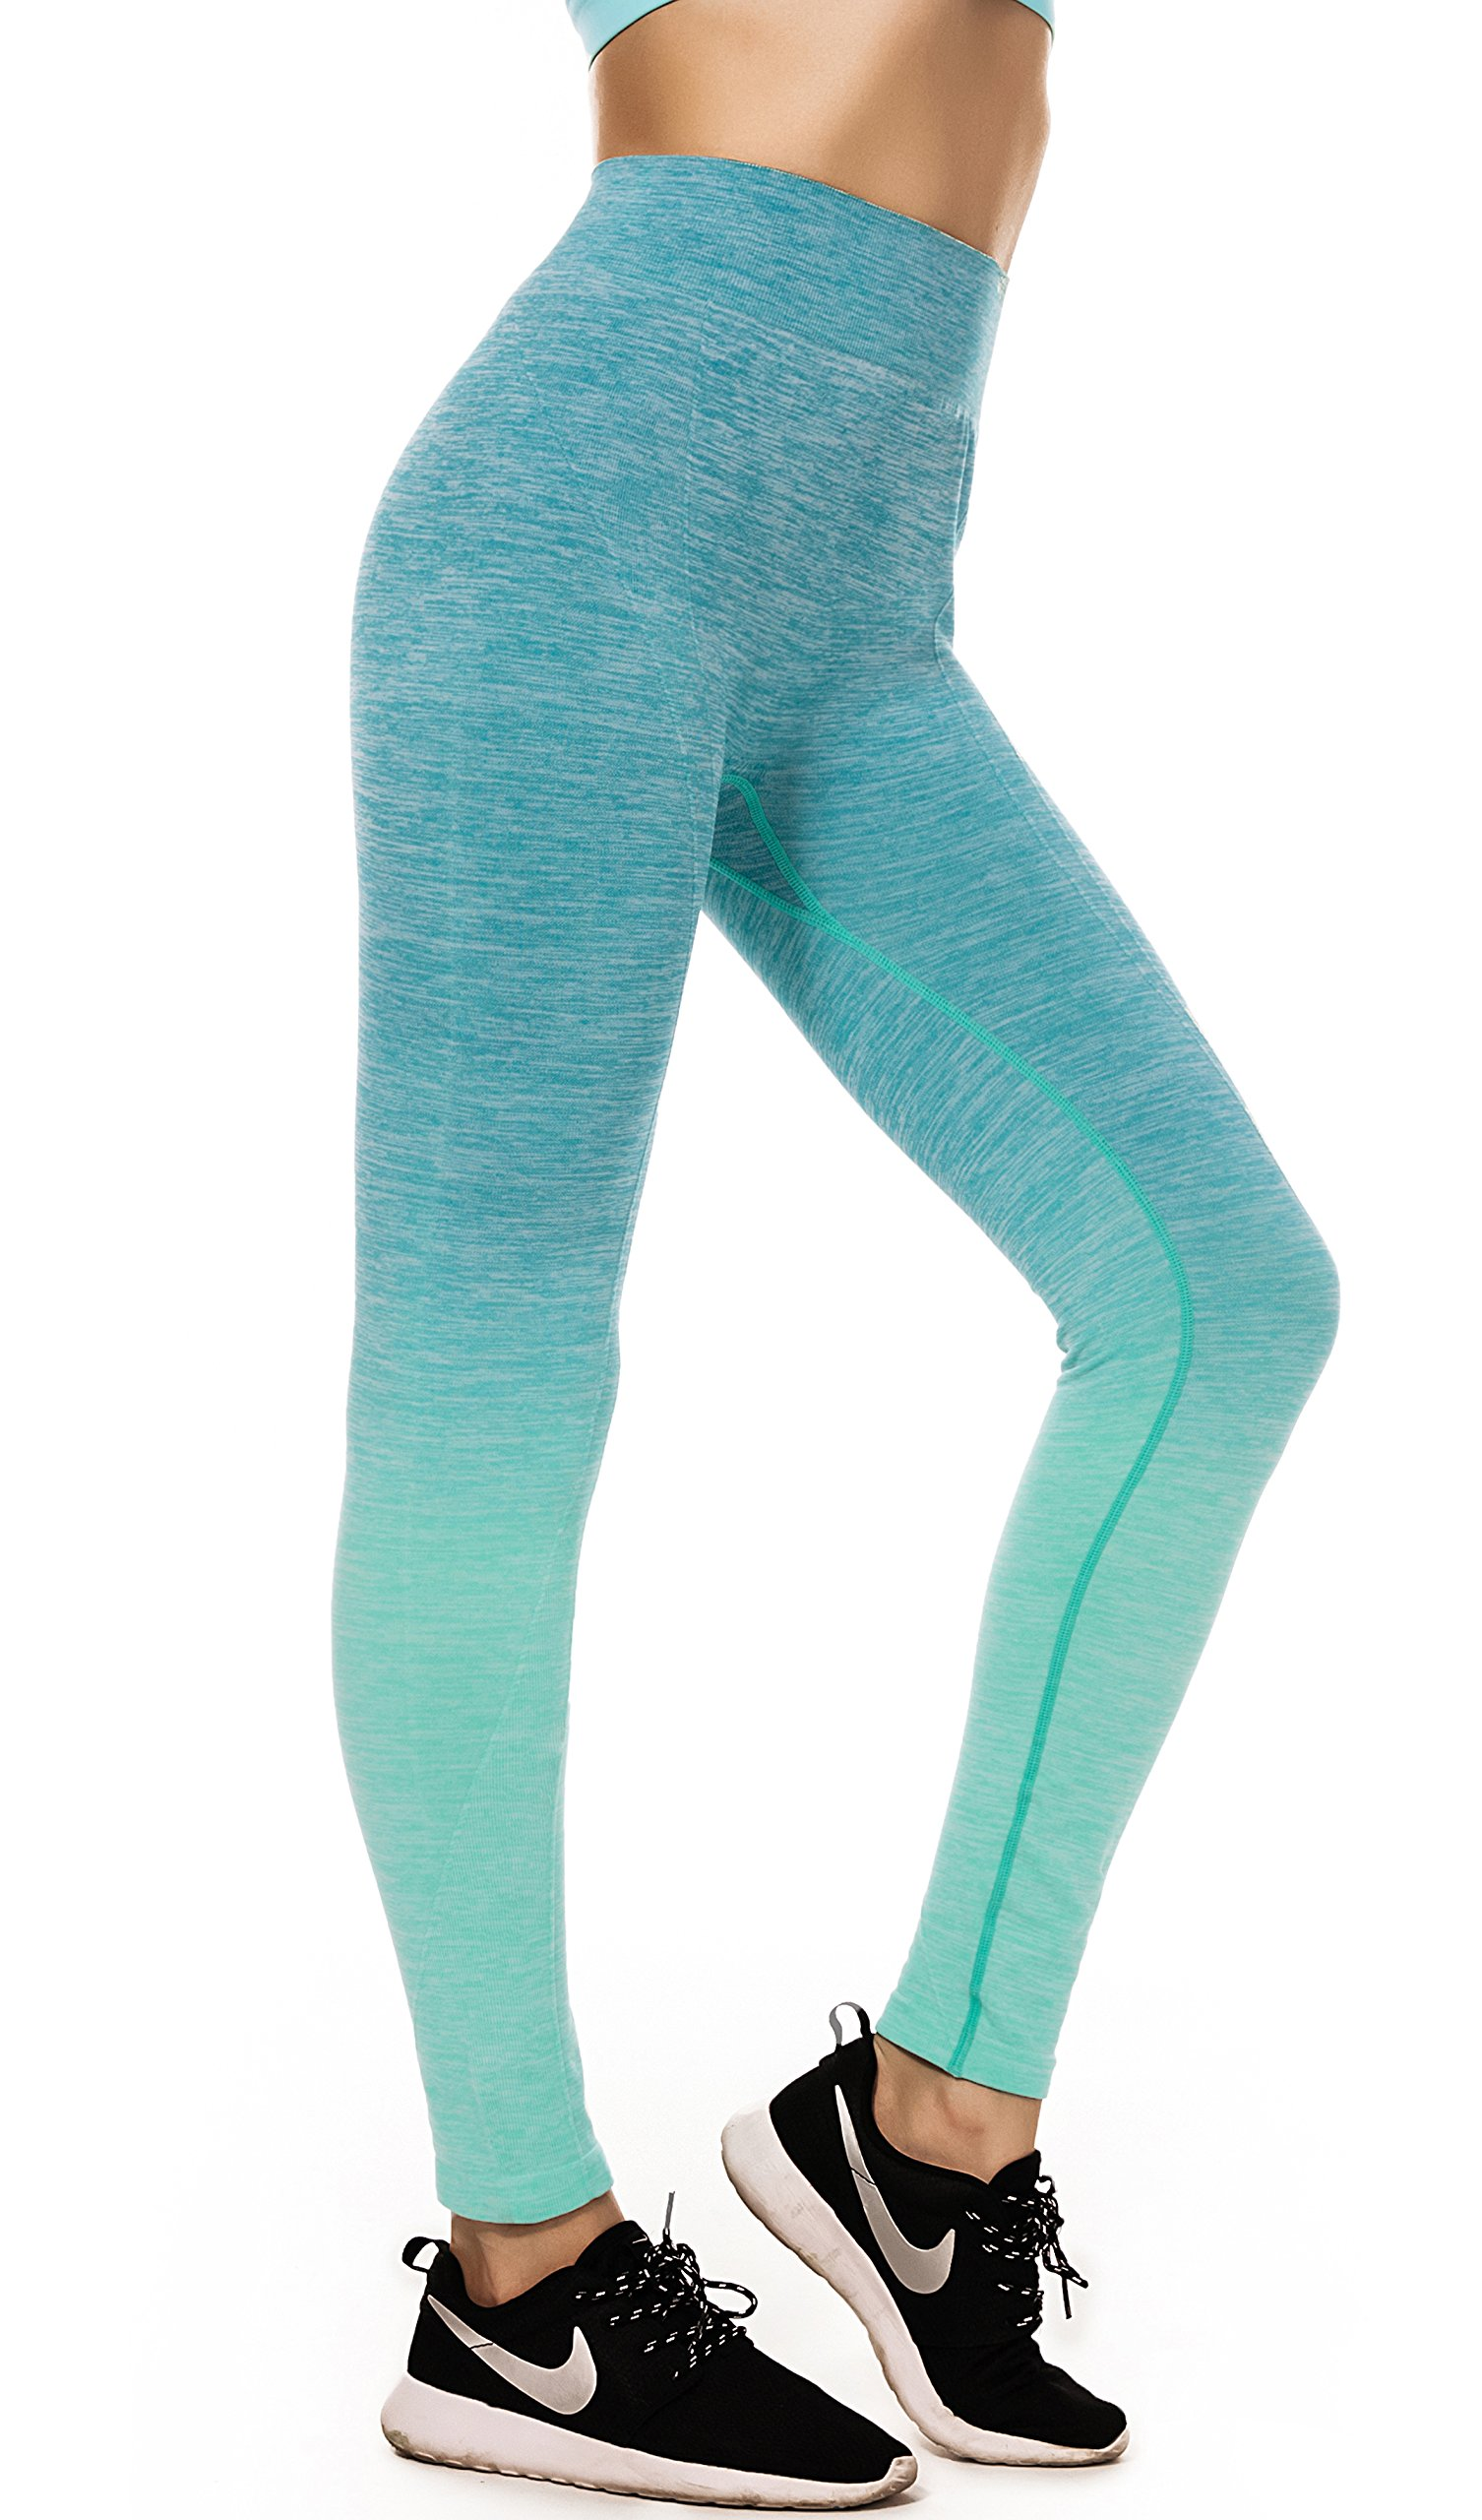 RUNNING GIRL Performance Women's Ombre Yoga Pants Active Leggings Stretch Space Dye Workout Tights(Green Small/Medium=US 4-8)